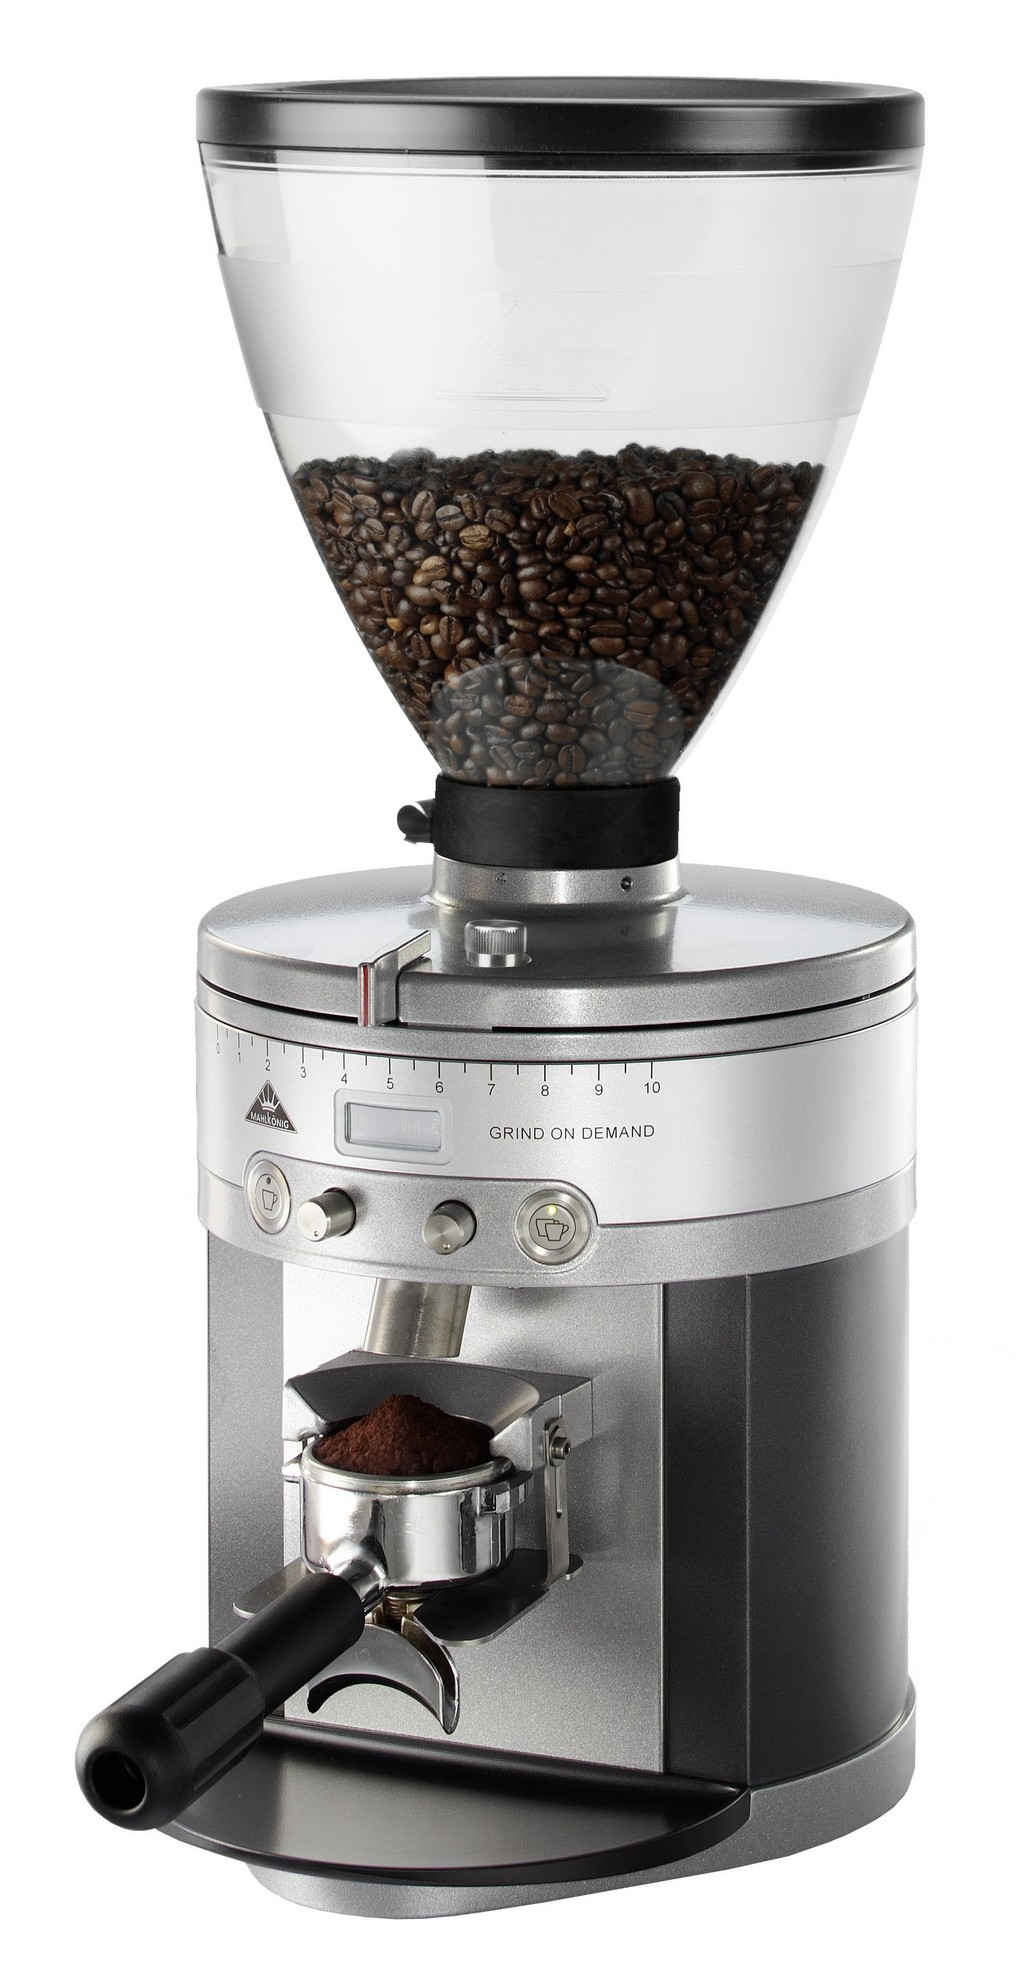 Benefit If Grinding Your Own Coffee Beans